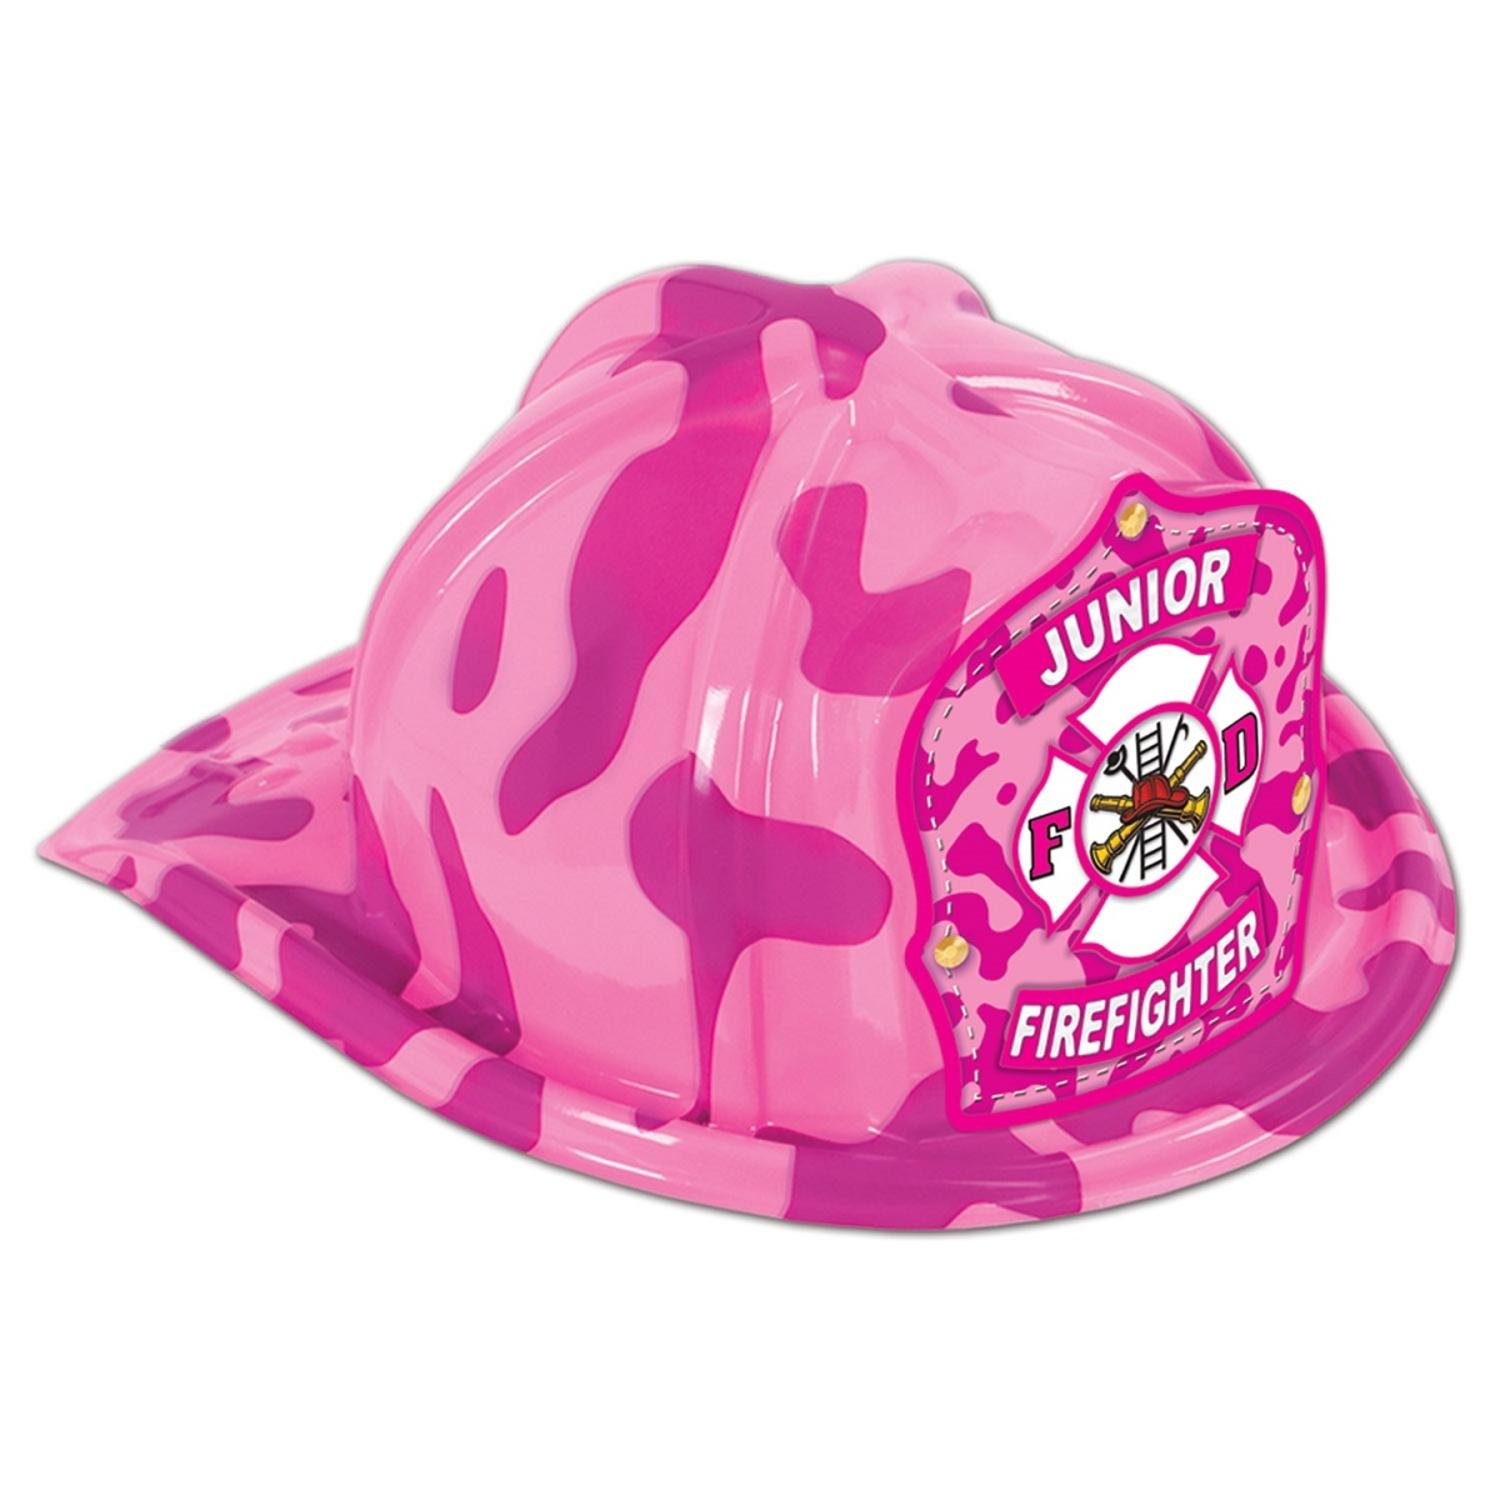 Club Pack of 48 Pink Camouflage Print Junior Firefighter Hat Costume Accessories by Party Central